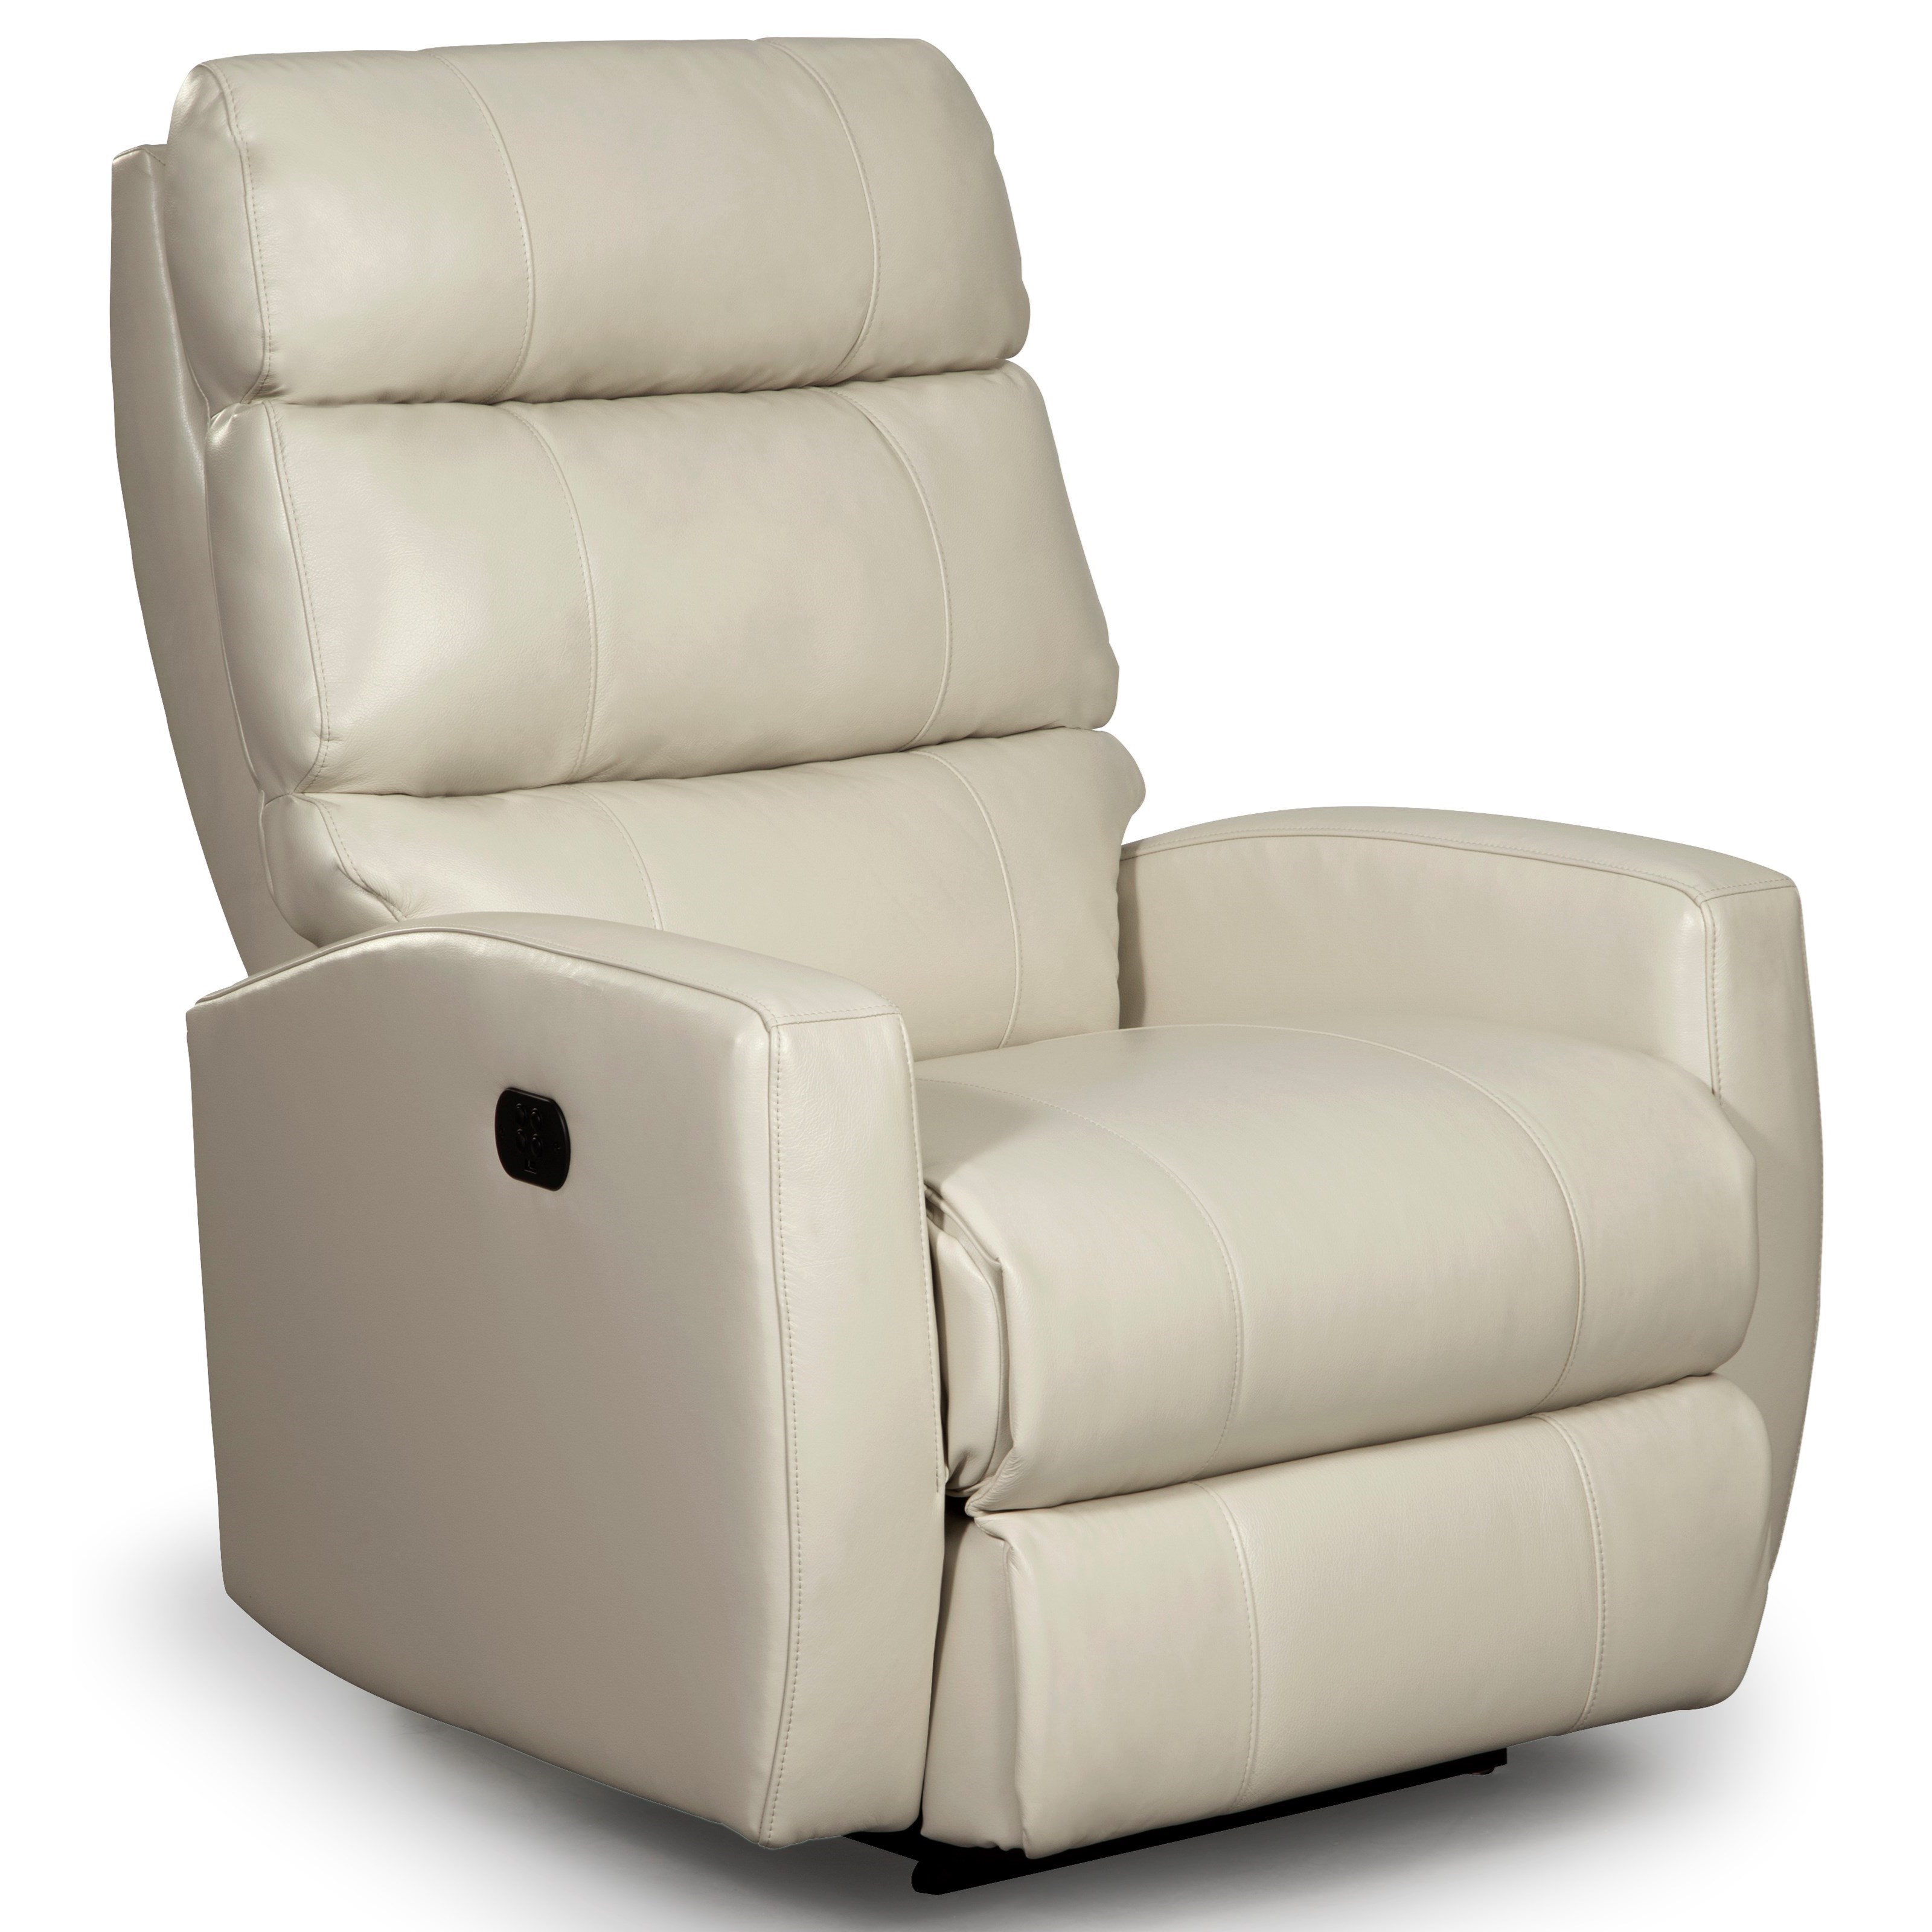 Hillarie Power Space Saver Recliner by Best Home Furnishings at Goods Furniture